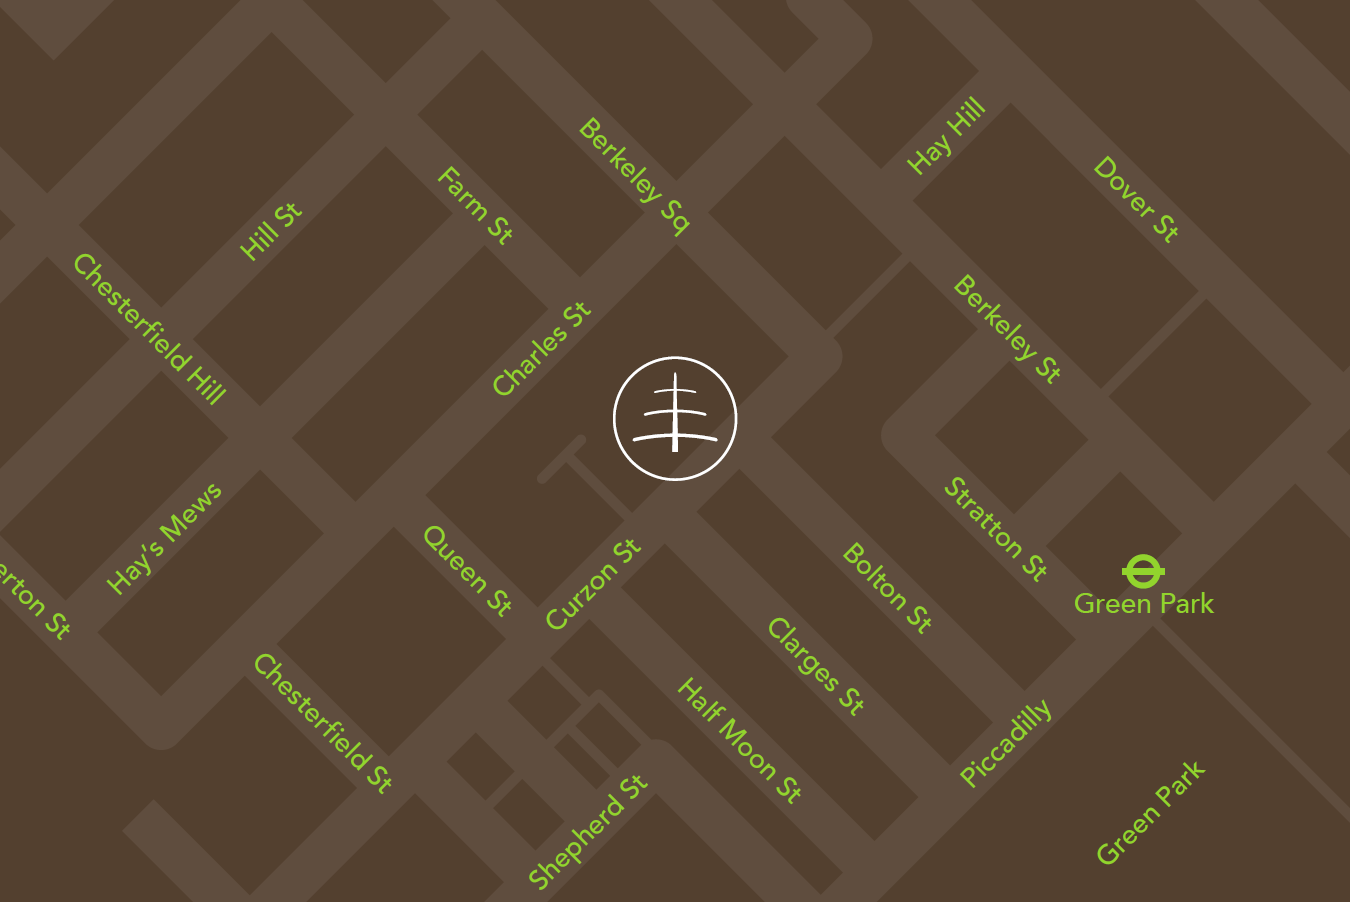 Crosstree Contact Map